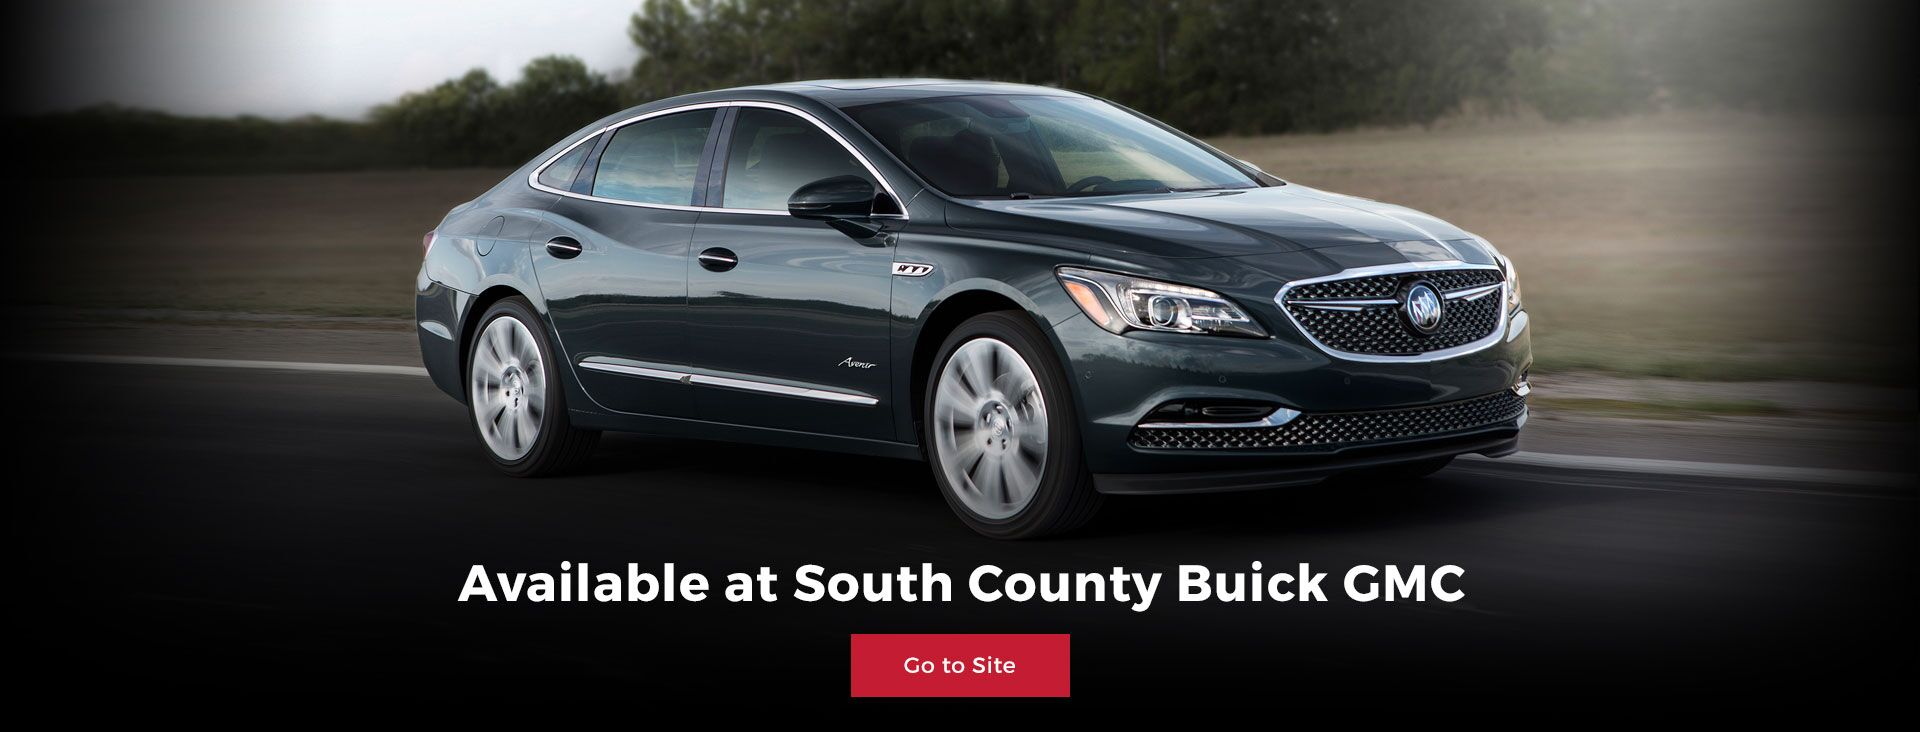 SOUTH COUNTY BUICK GMC in National City CA